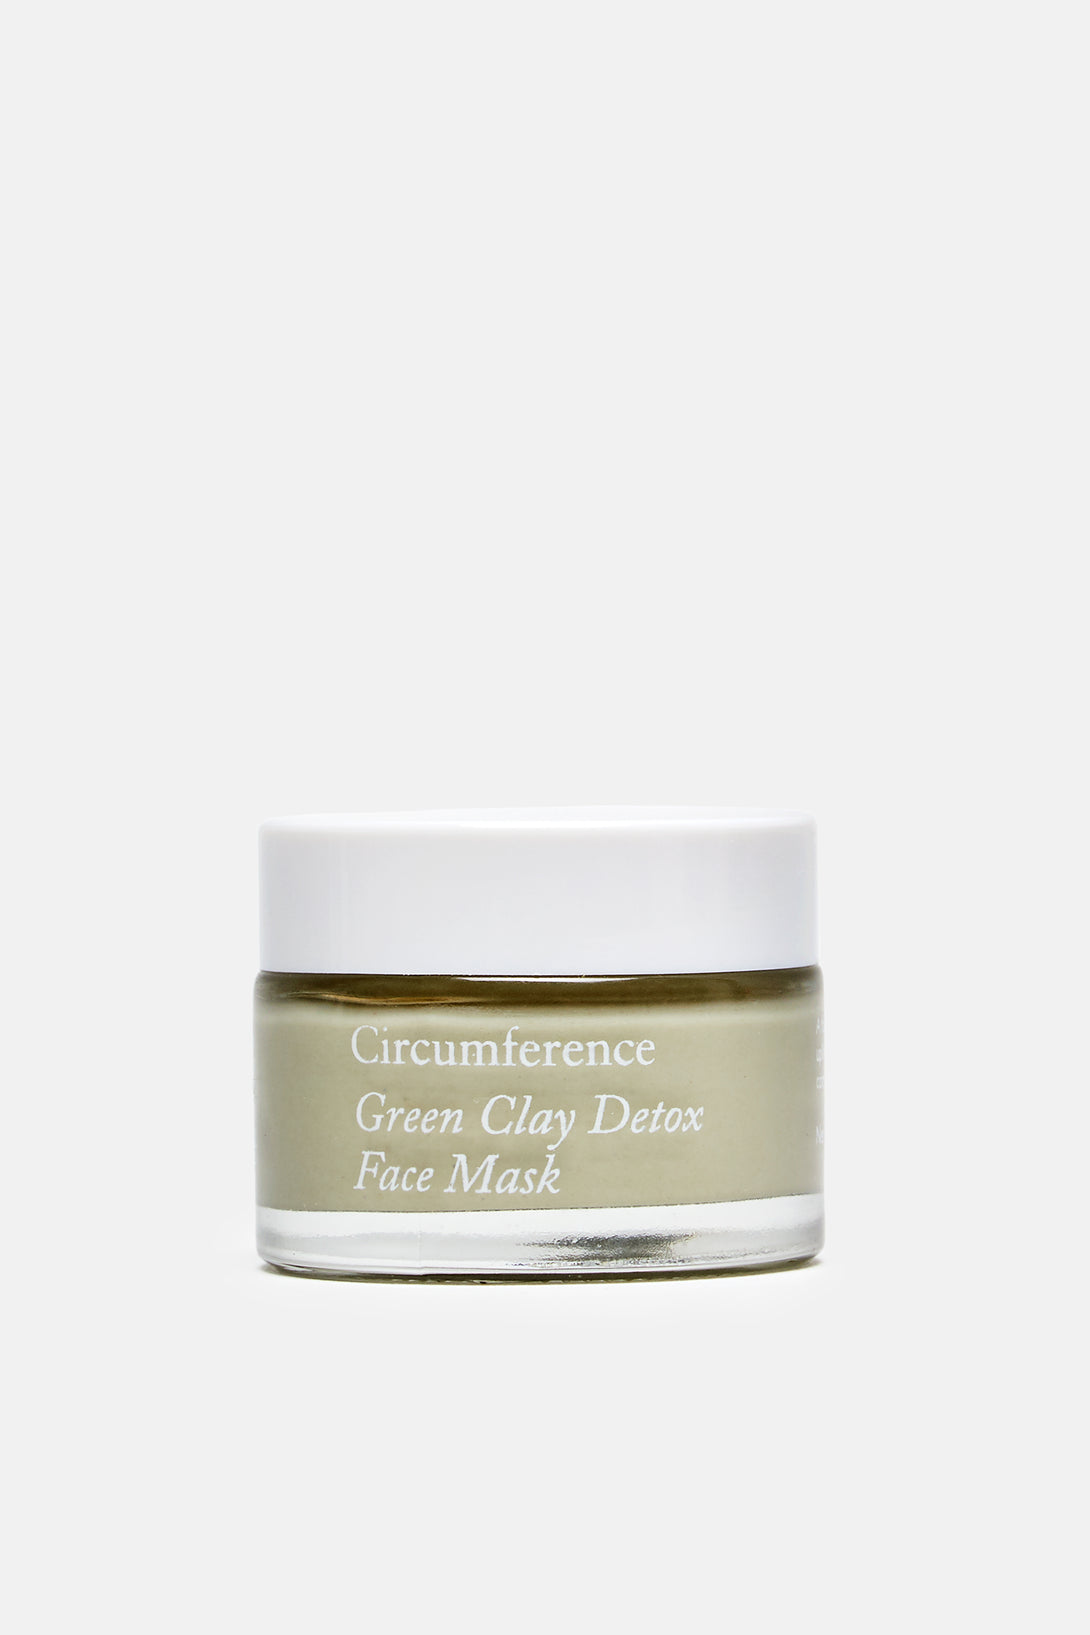 Green Clay Detox Face Mask